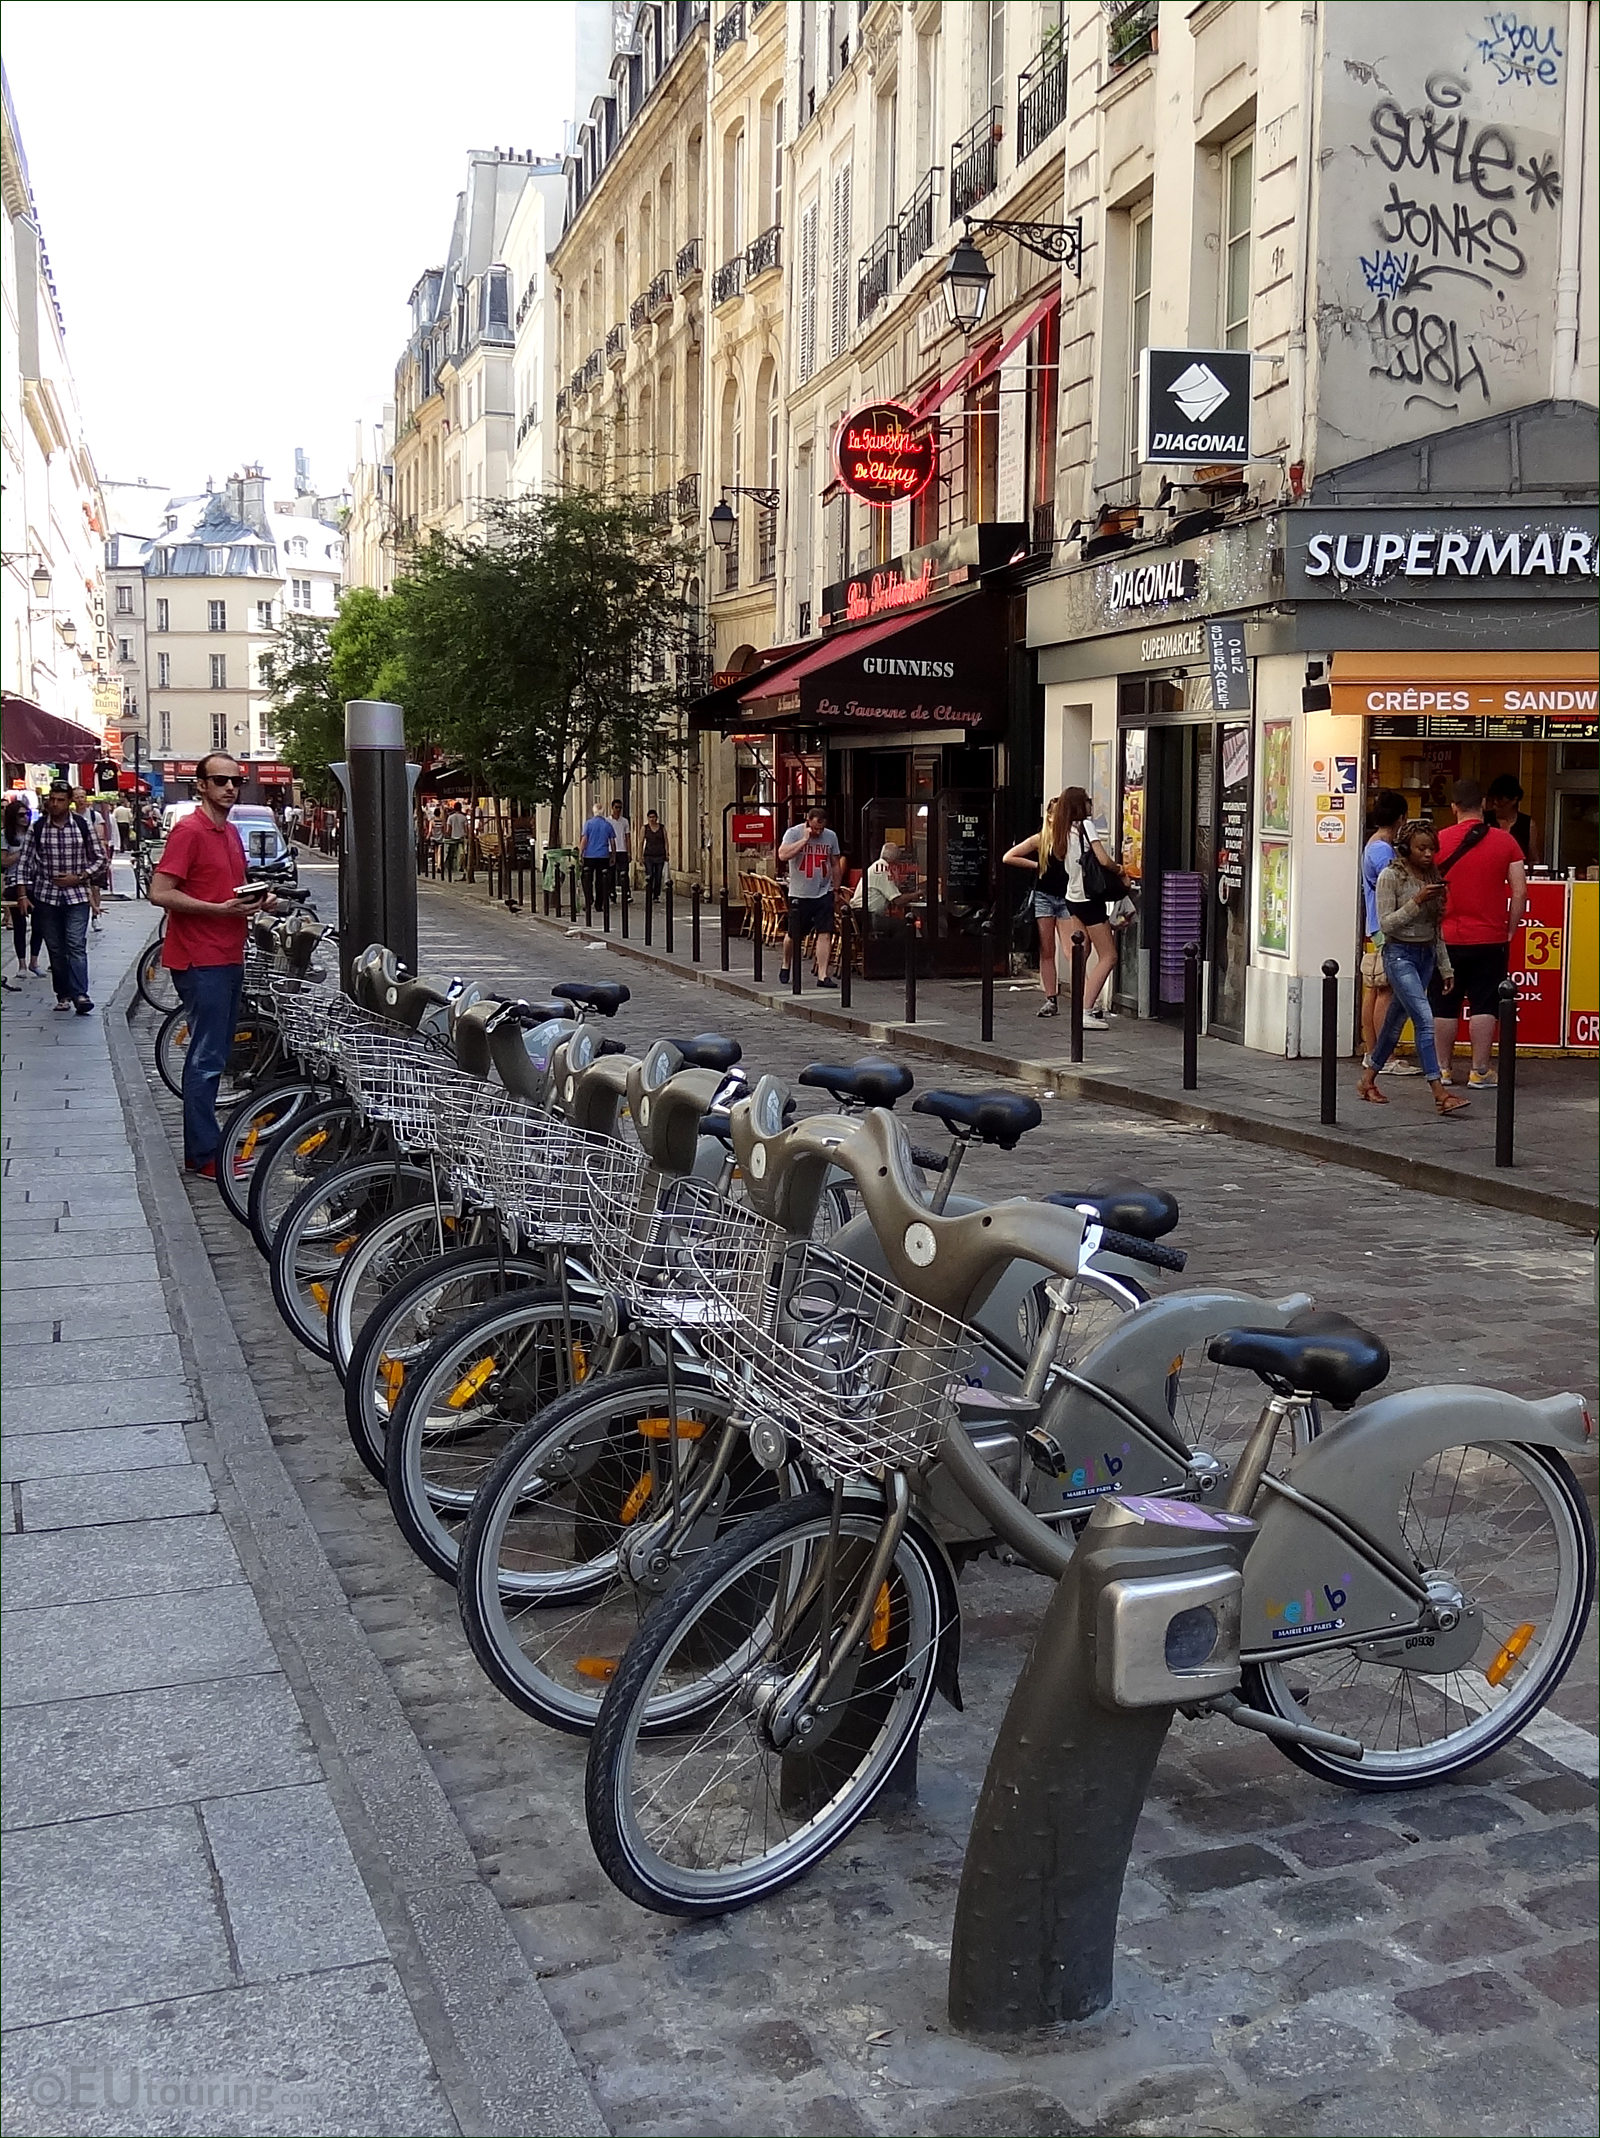 hd photos of the velib bike hire system in paris france page 1. Black Bedroom Furniture Sets. Home Design Ideas